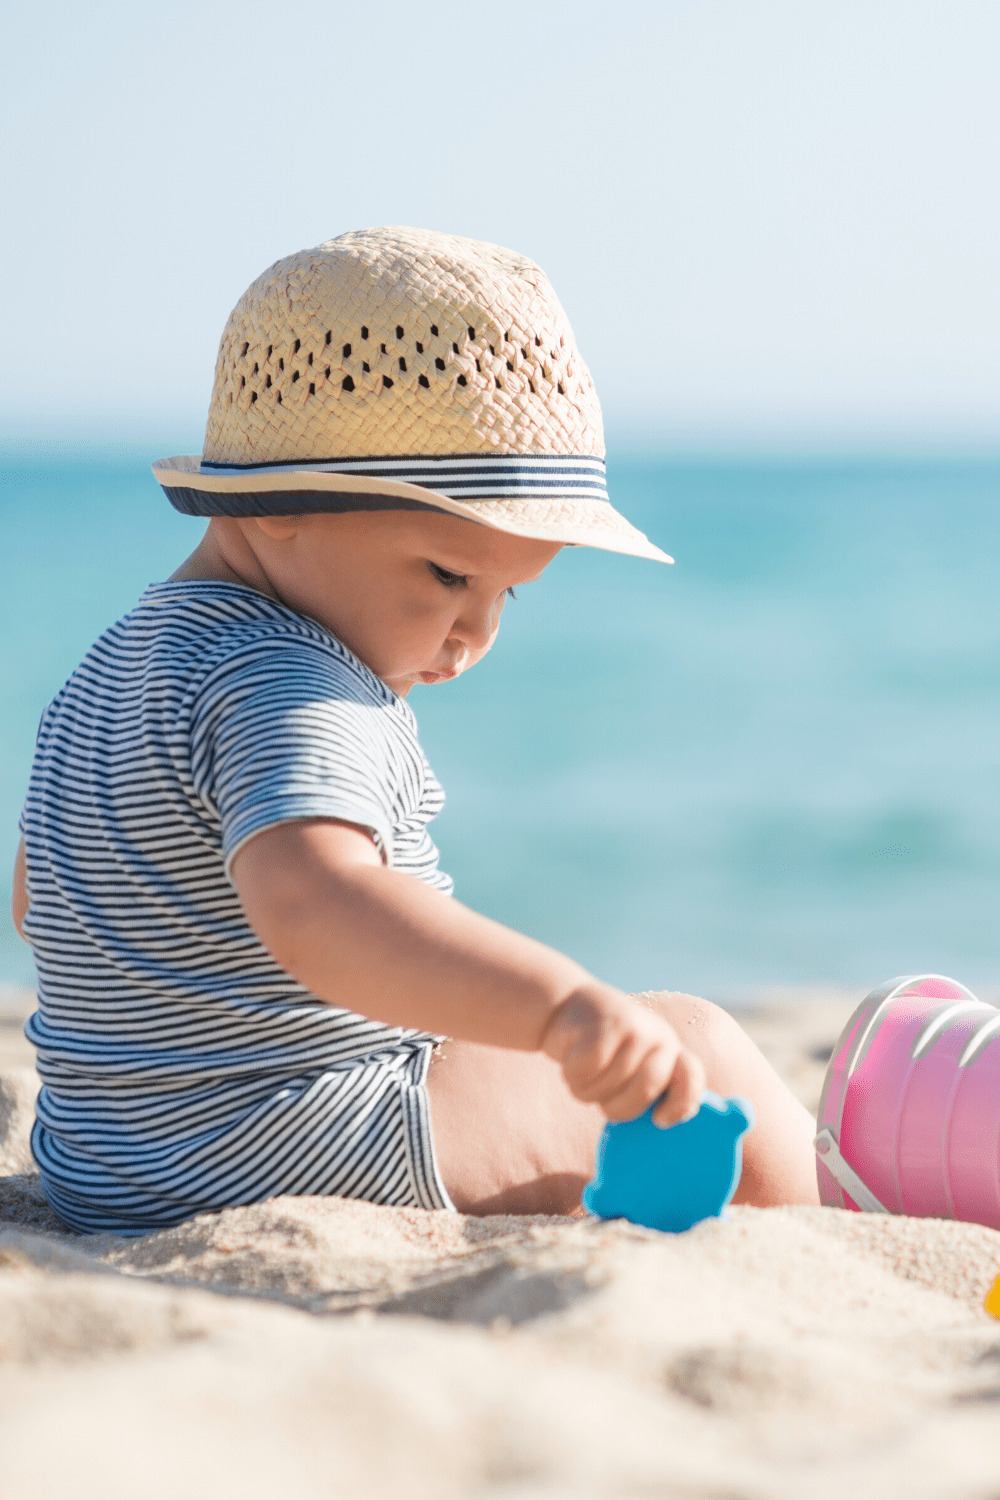 18 Tips for Going to the Beach with a Baby